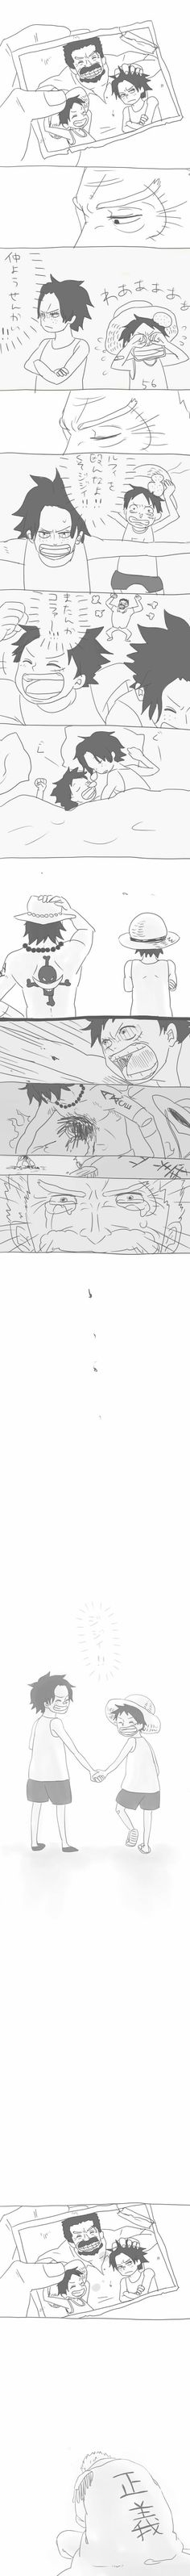 Ace, Luffy, Garp, young, childhood, different ages, time lapse, photo, picture, crying, sad, death, text, comic; One Piece